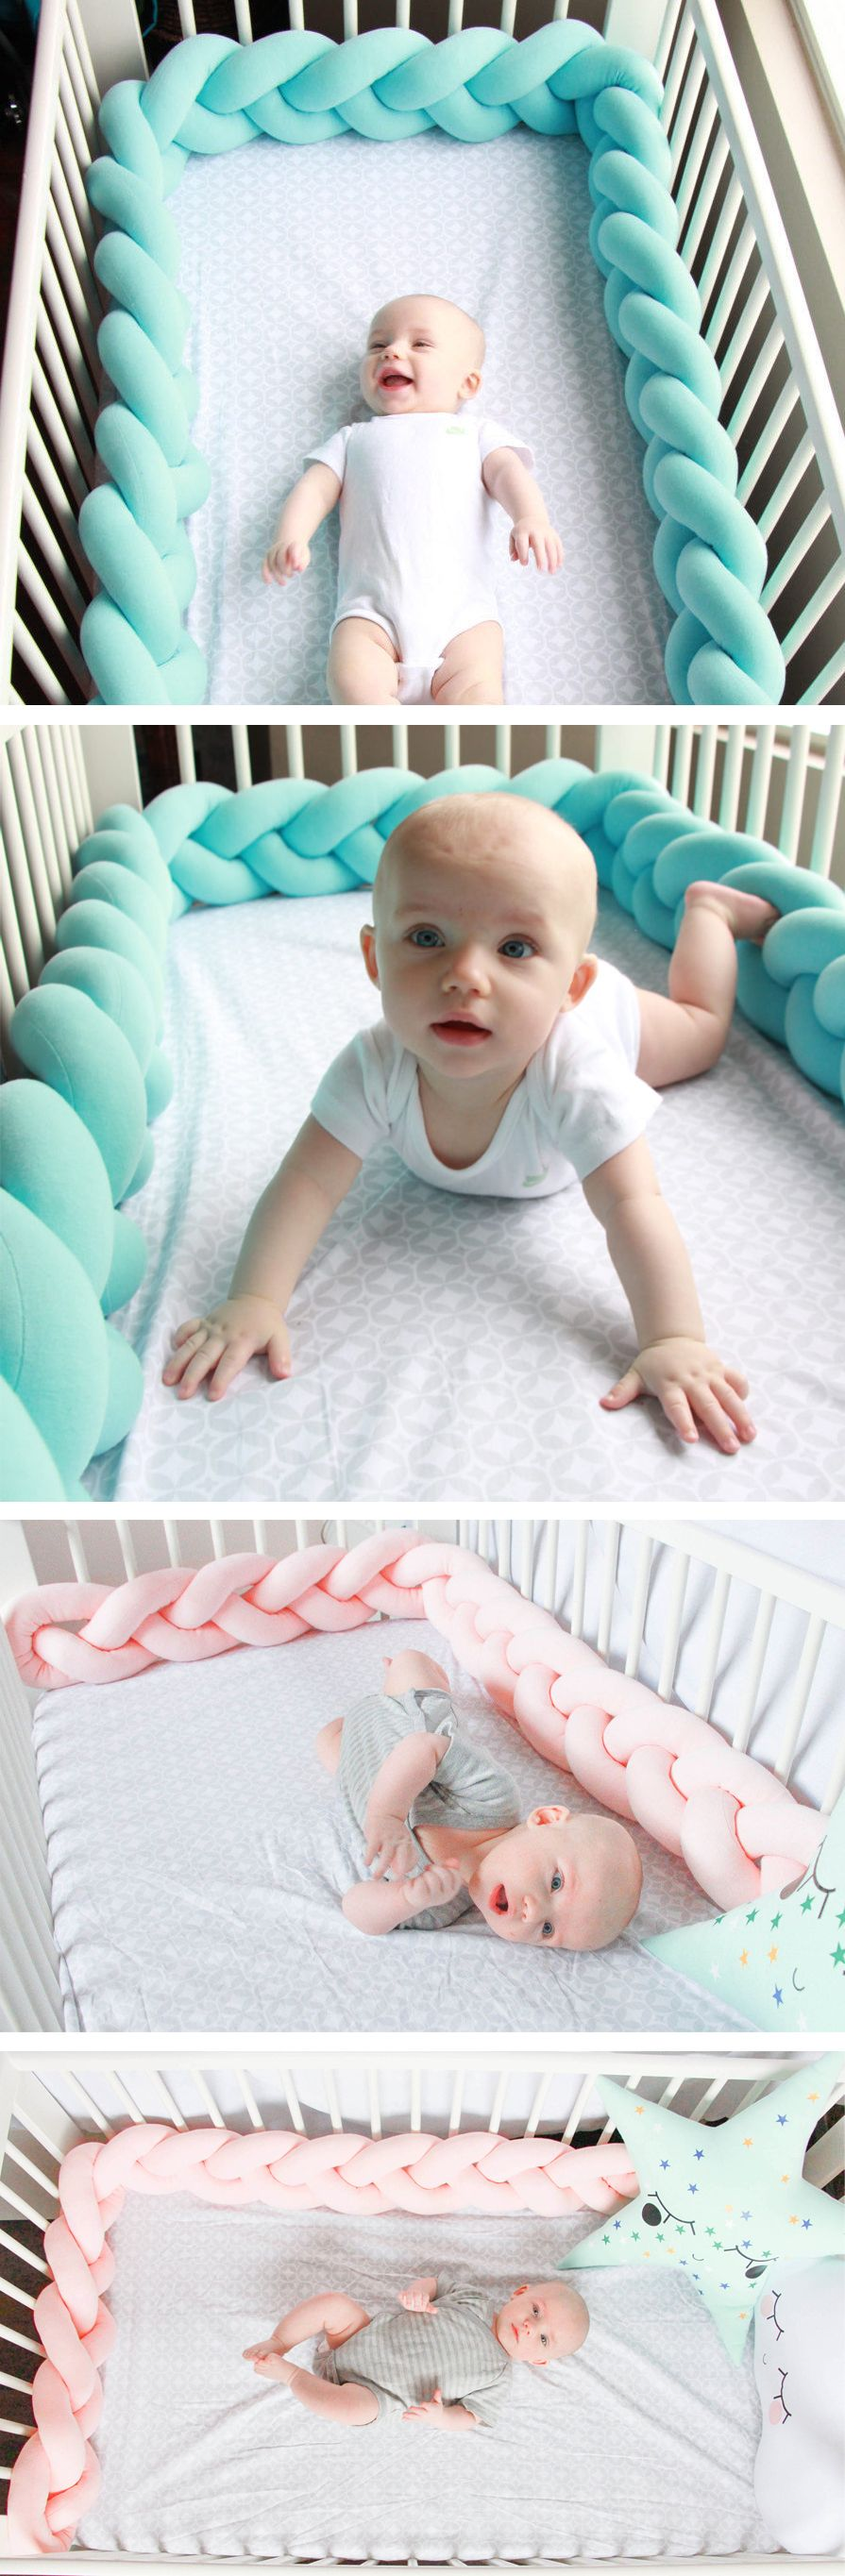 Crib pillows babies - Braided Crib Bumper Knot Pillow Knot Cushion Decorative Pillow Bolster Crib